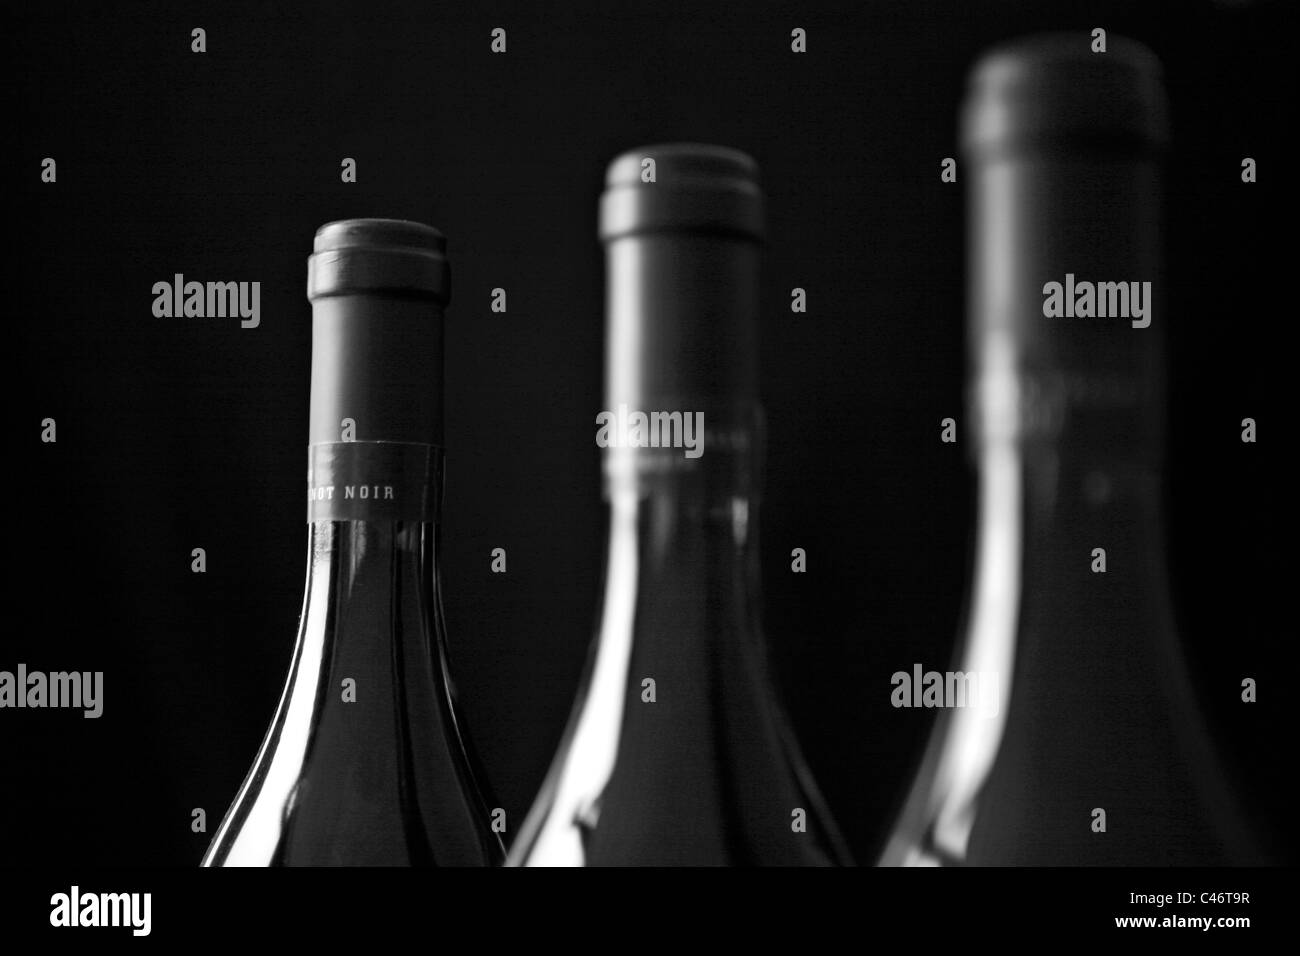 Three bottles of wine placed in a row. - Stock Image